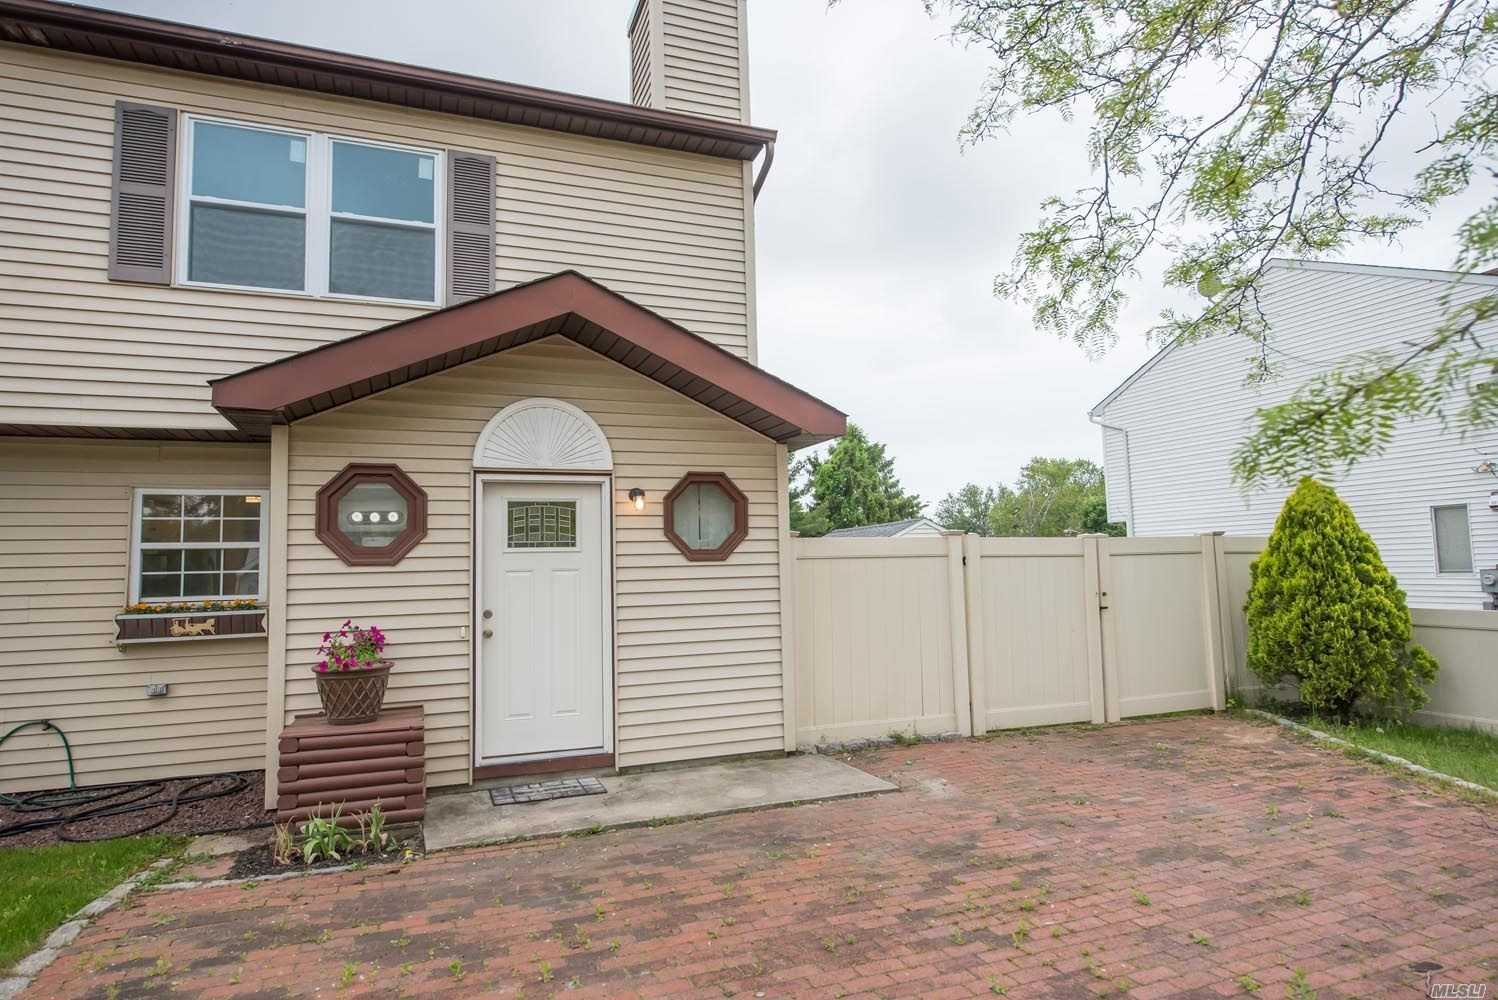 Property for sale at 6 Trim St, Bay Shore NY 11706, Bay Shore,  New York 11706